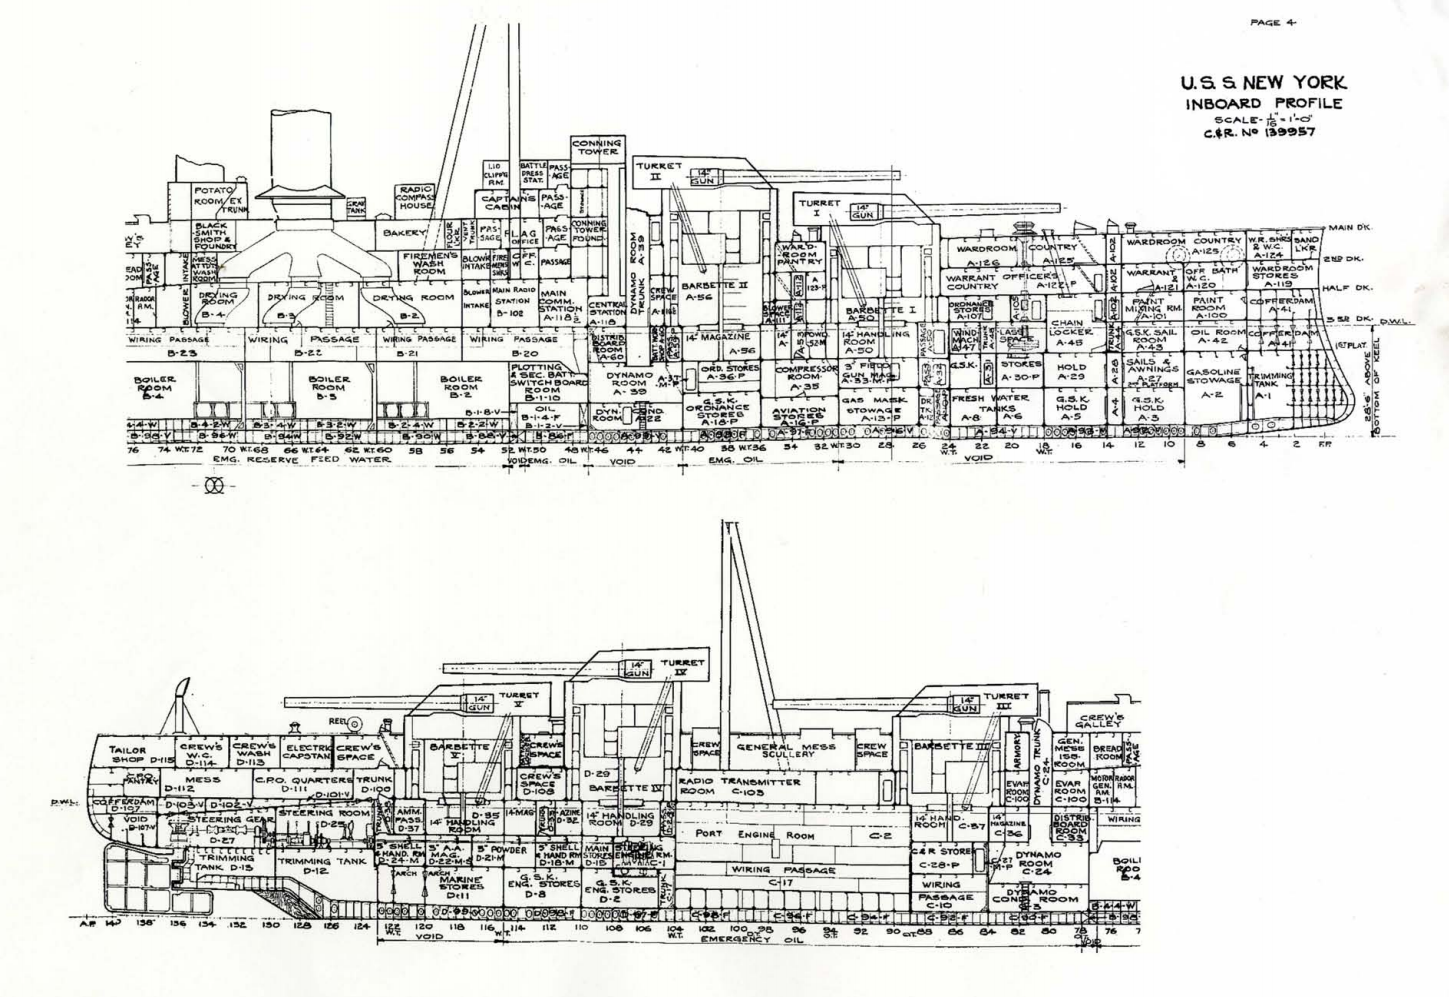 uss new york bb34 inboard profile plans drawings blueprints  http://maritime org